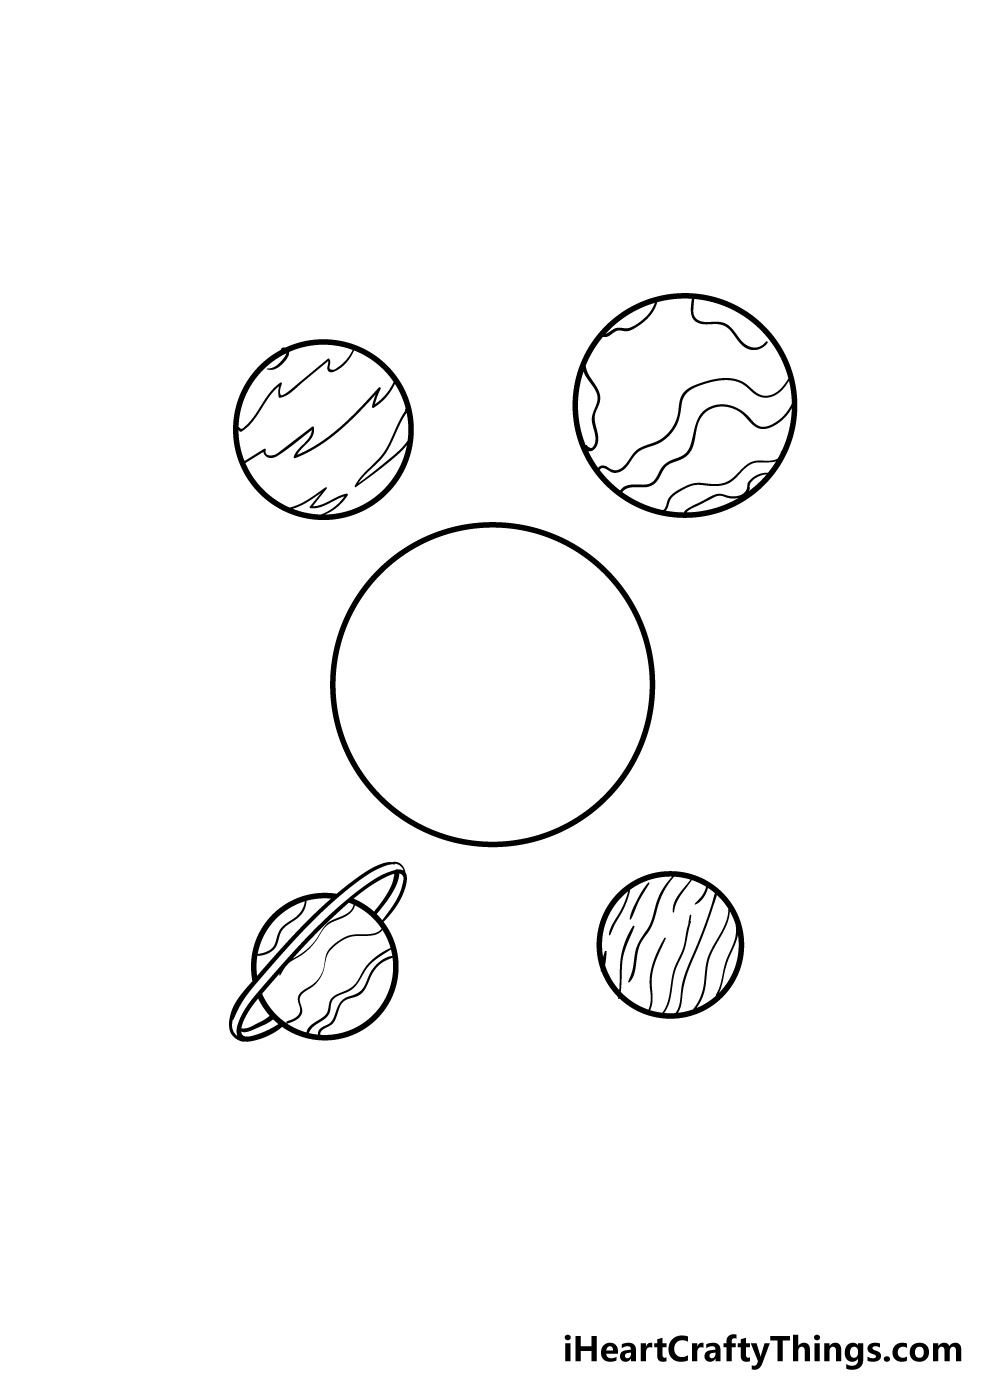 planets drawing step 4